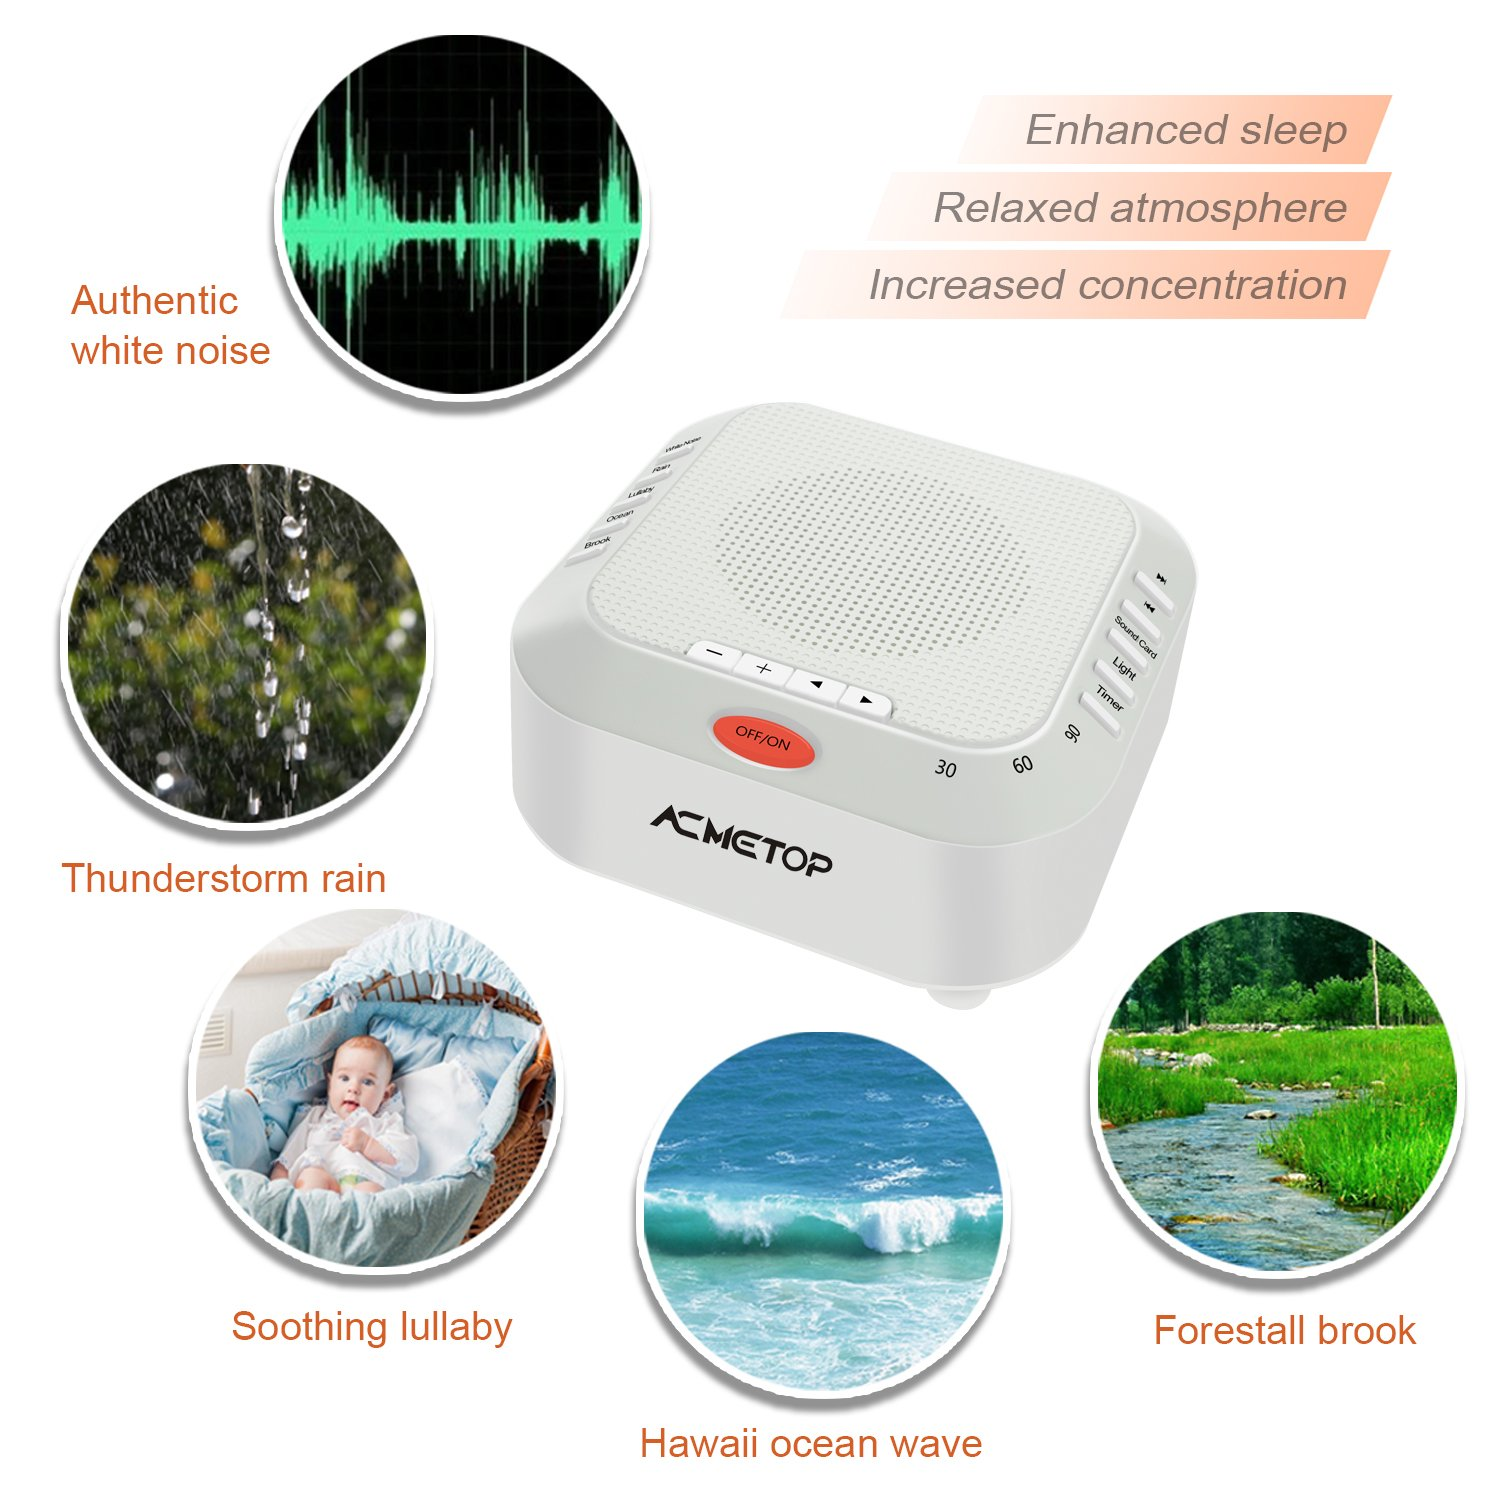 [New Upgrade] Rechargeable White Noise Machine, ACMETOP Portable Sleep Therapy Sound Machine for Baby, Kids, Home, Travel with High Fidelity Nature Sound, Soft Night Light by ACMETOP (Image #4)